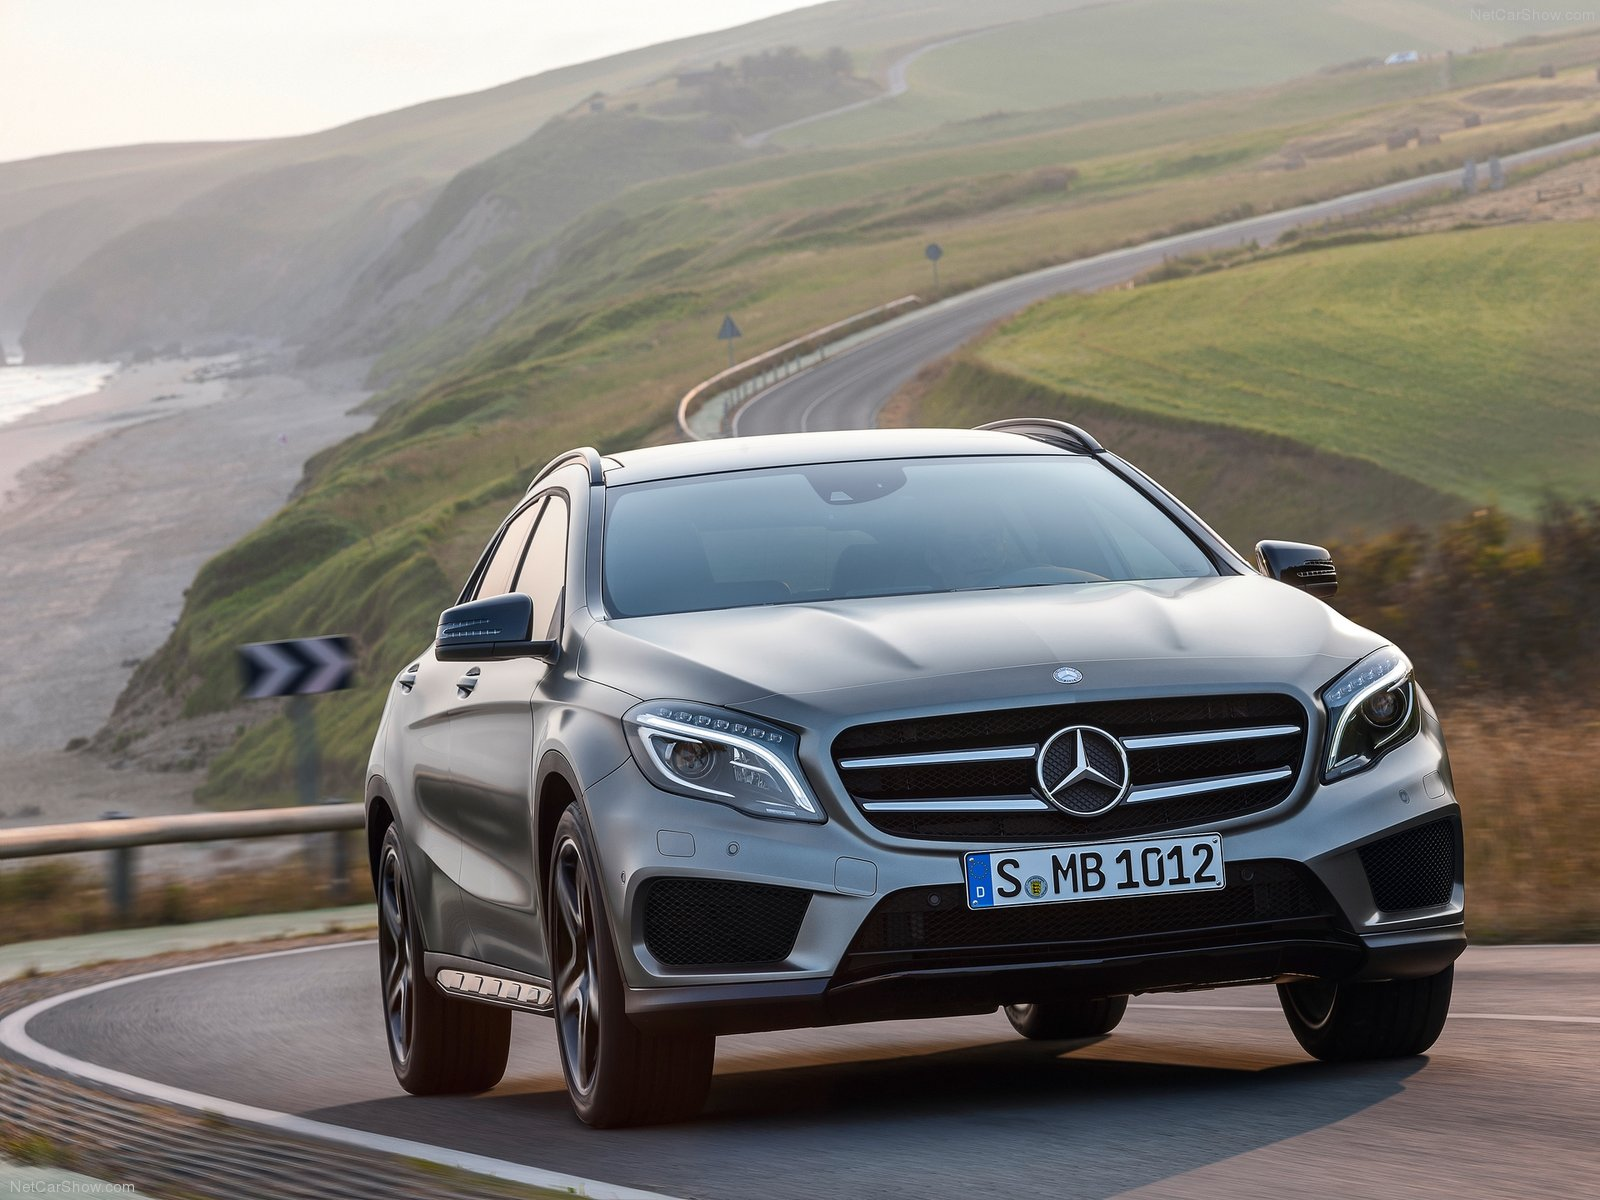 2015 mercedes benz gla mercedes benz for 2015 mercedes benz ml